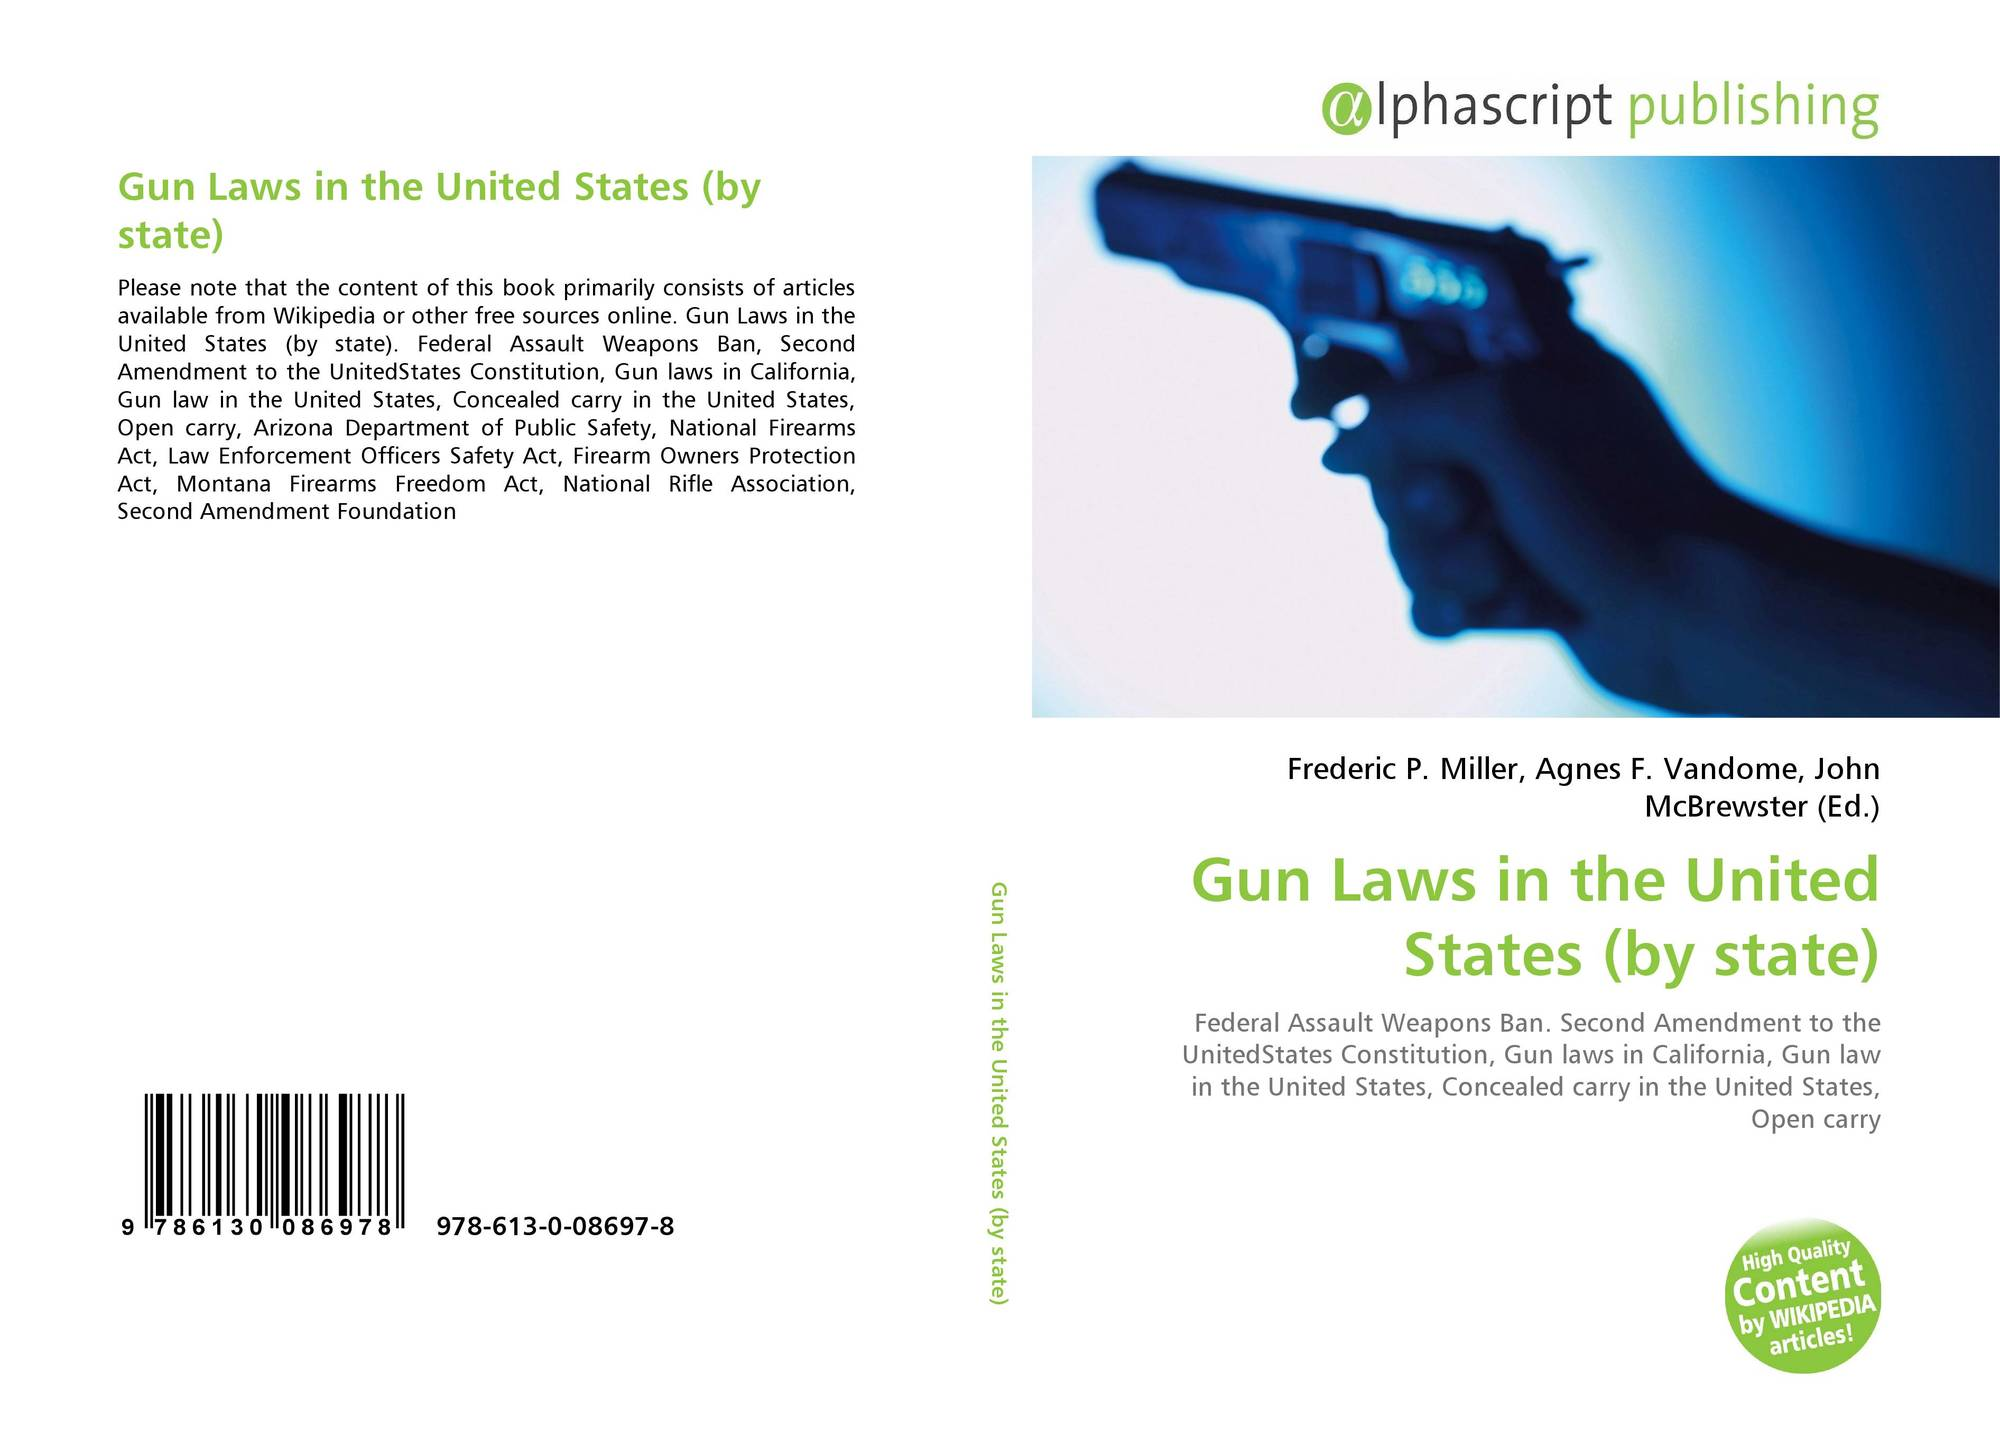 Gun Laws in the United States (by state), 978-613-0-08697-8